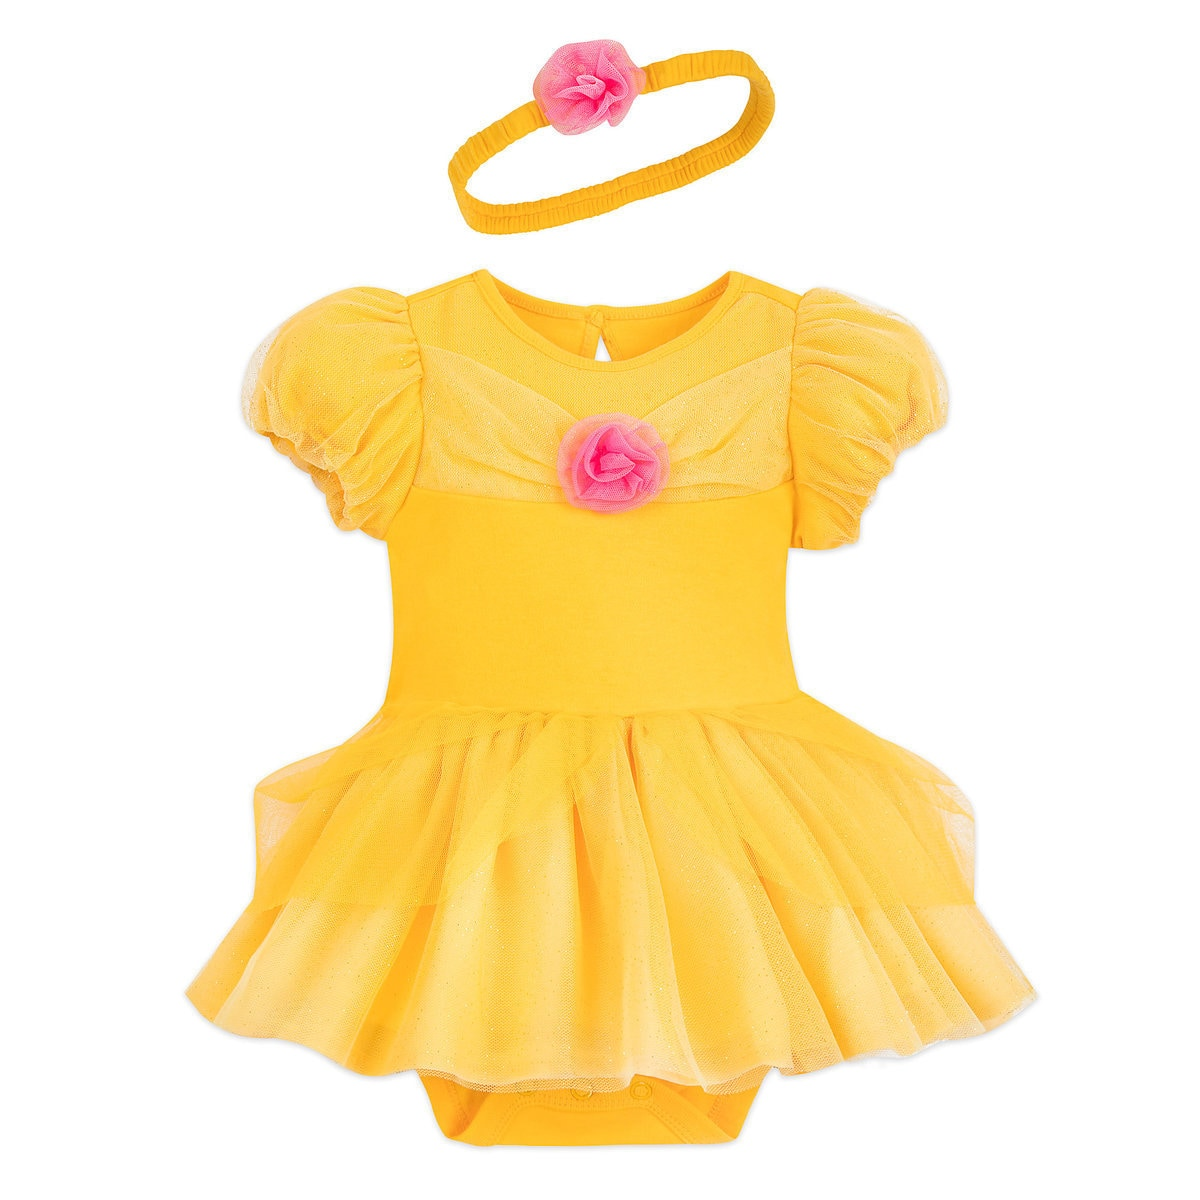 Top 25 Disney Gift Ideas for Babies featured by top US Disney blogger, Marcie and the Mouse: How cute is this Belle costumes for babies